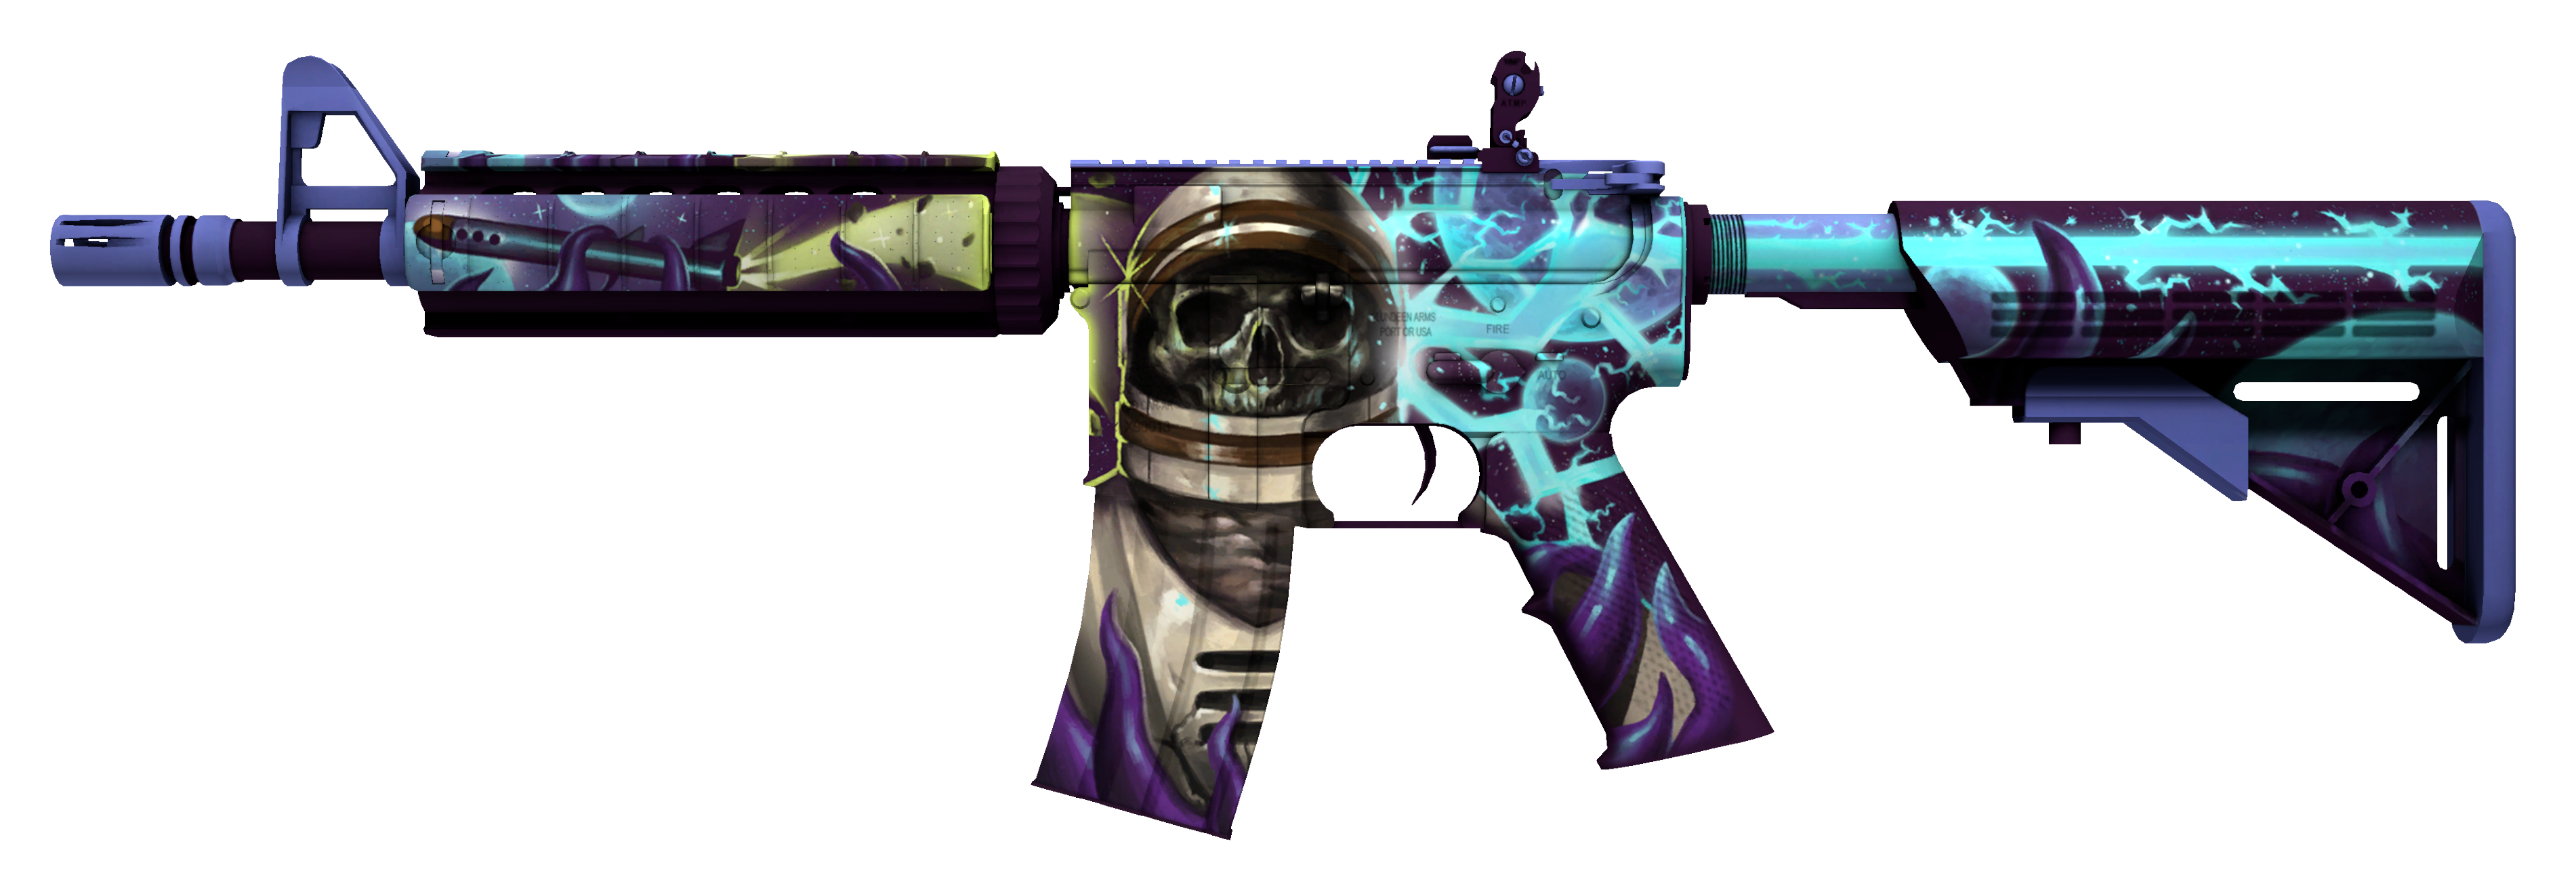 Csgo skins png. Normal compared to perfect